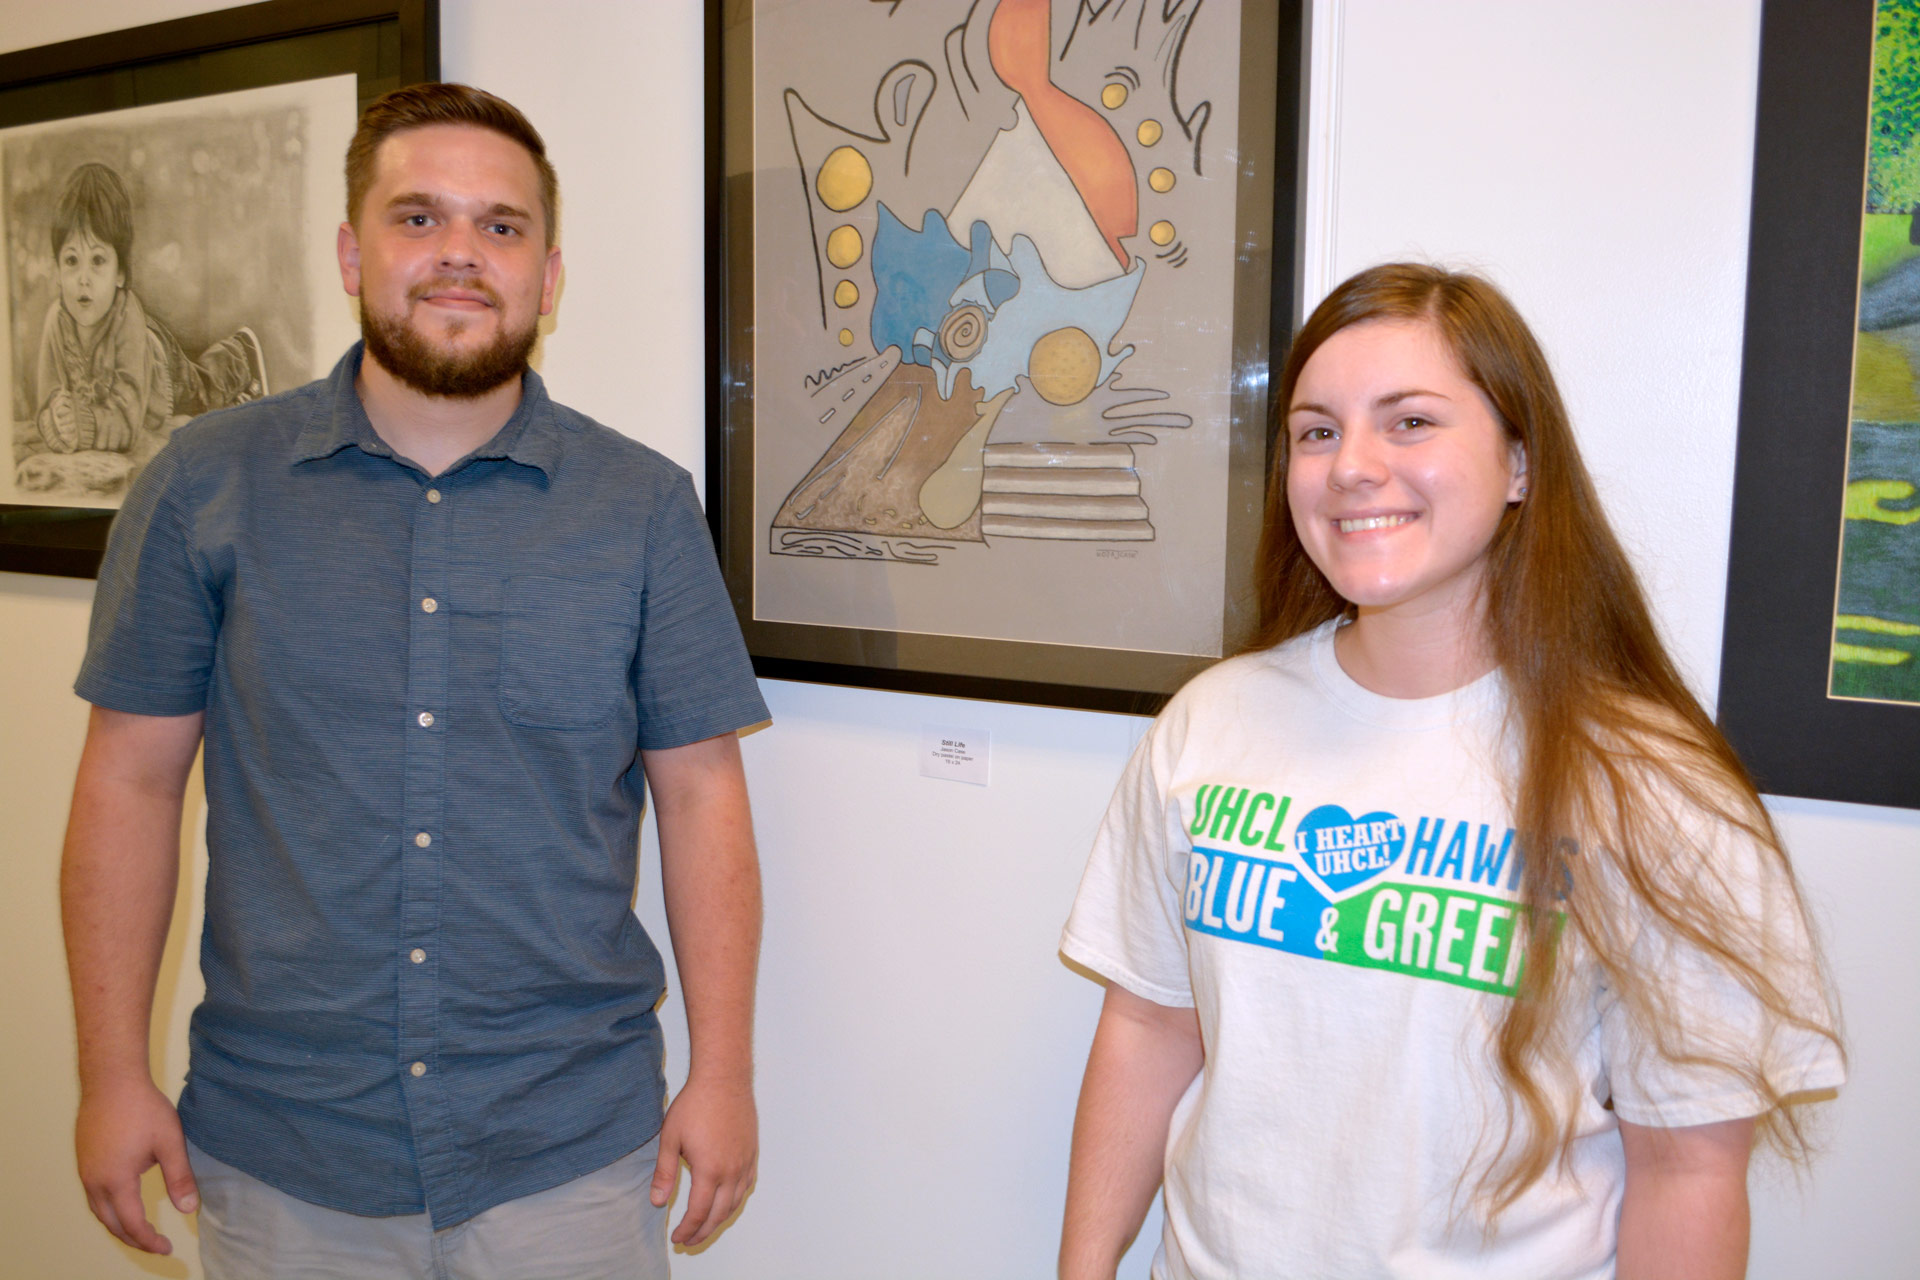 Exhibition showcases student work from every art class UHCL offers